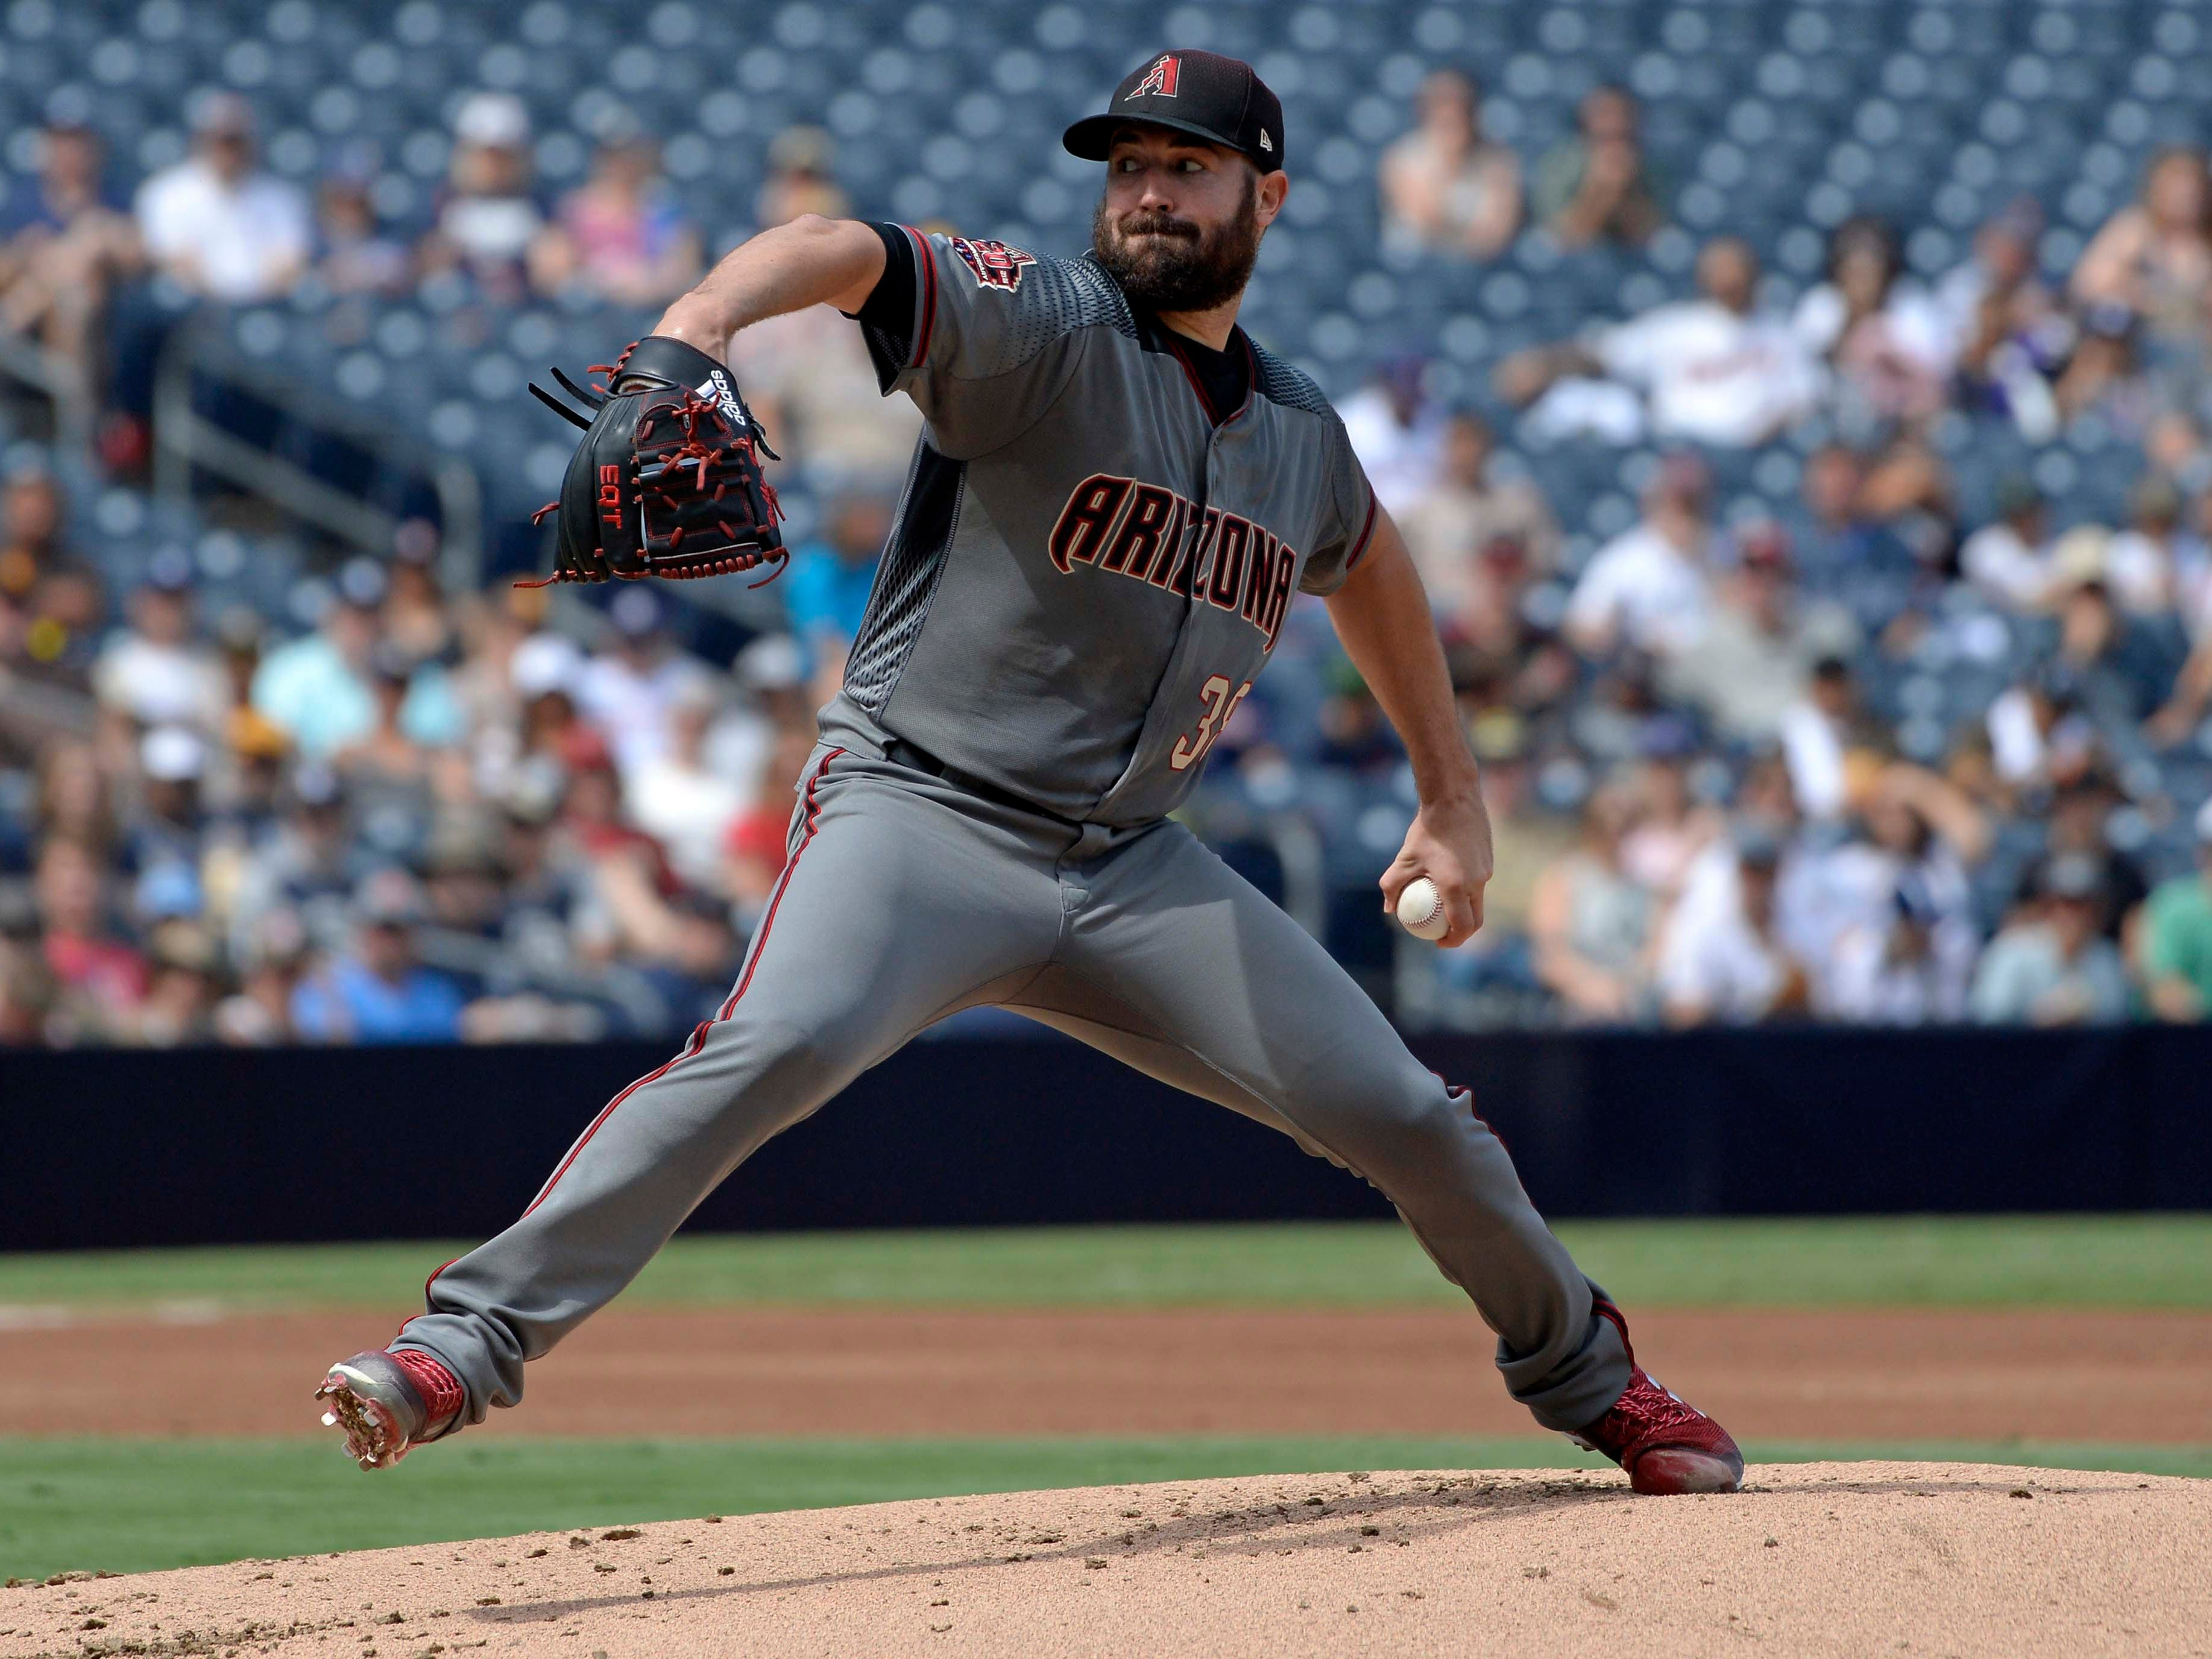 Sep 30, 2018; San Diego, CA, USA; Arizona Diamondbacks starting pitcher Robbie Ray (38) pitches against the San Diego Padres during the first inning at Petco Park. Mandatory Credit: Jake Roth-USA TODAY Sports